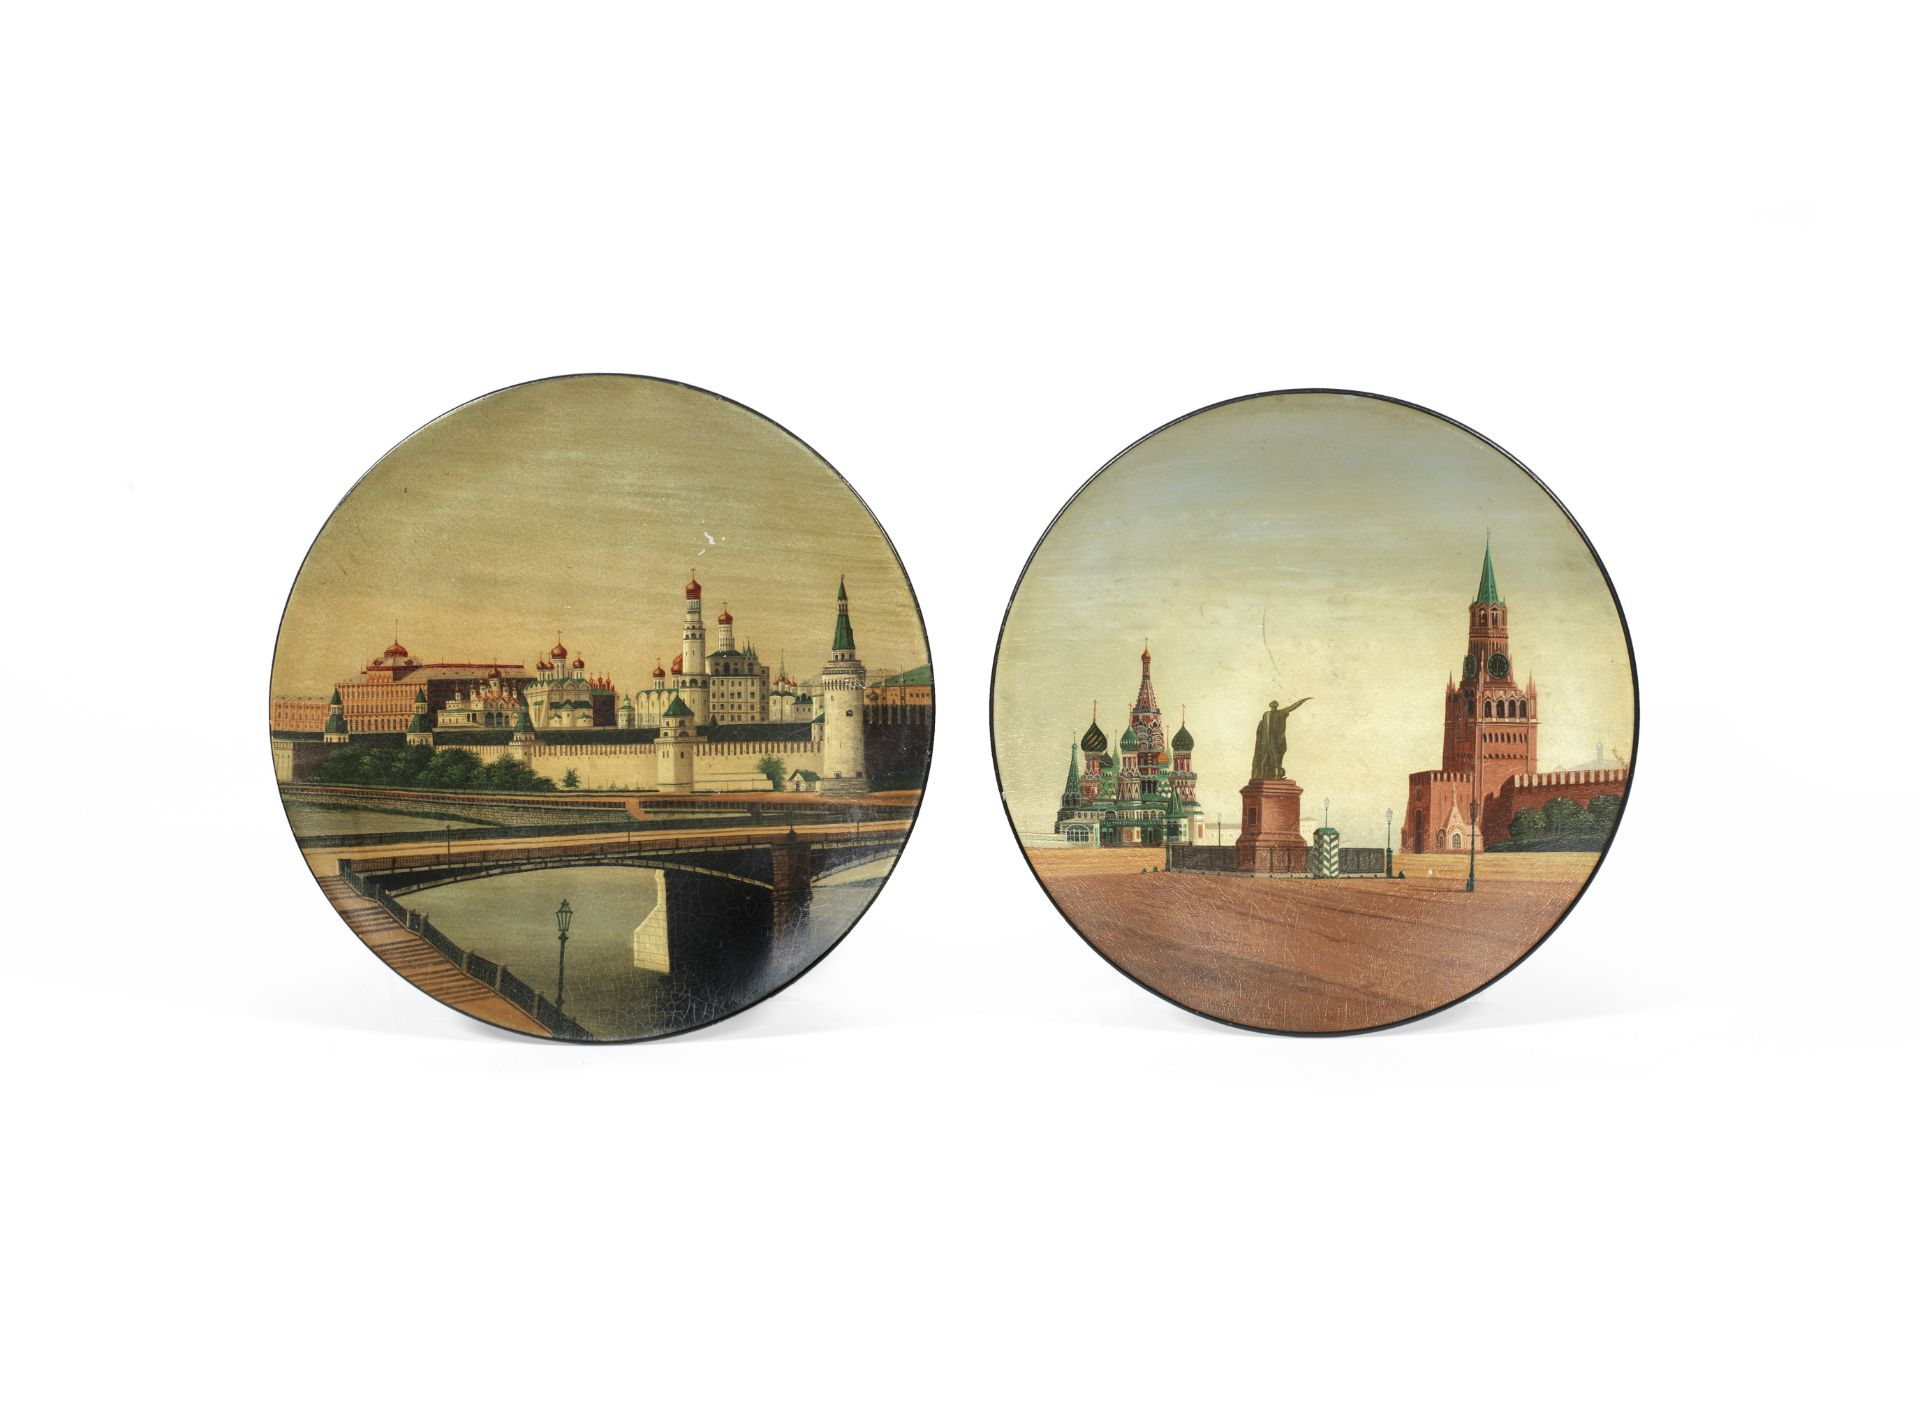 A late 19th / early 20th century Vishniakov papier mache lacquered and painted plate depicting a ... - Image 2 of 2